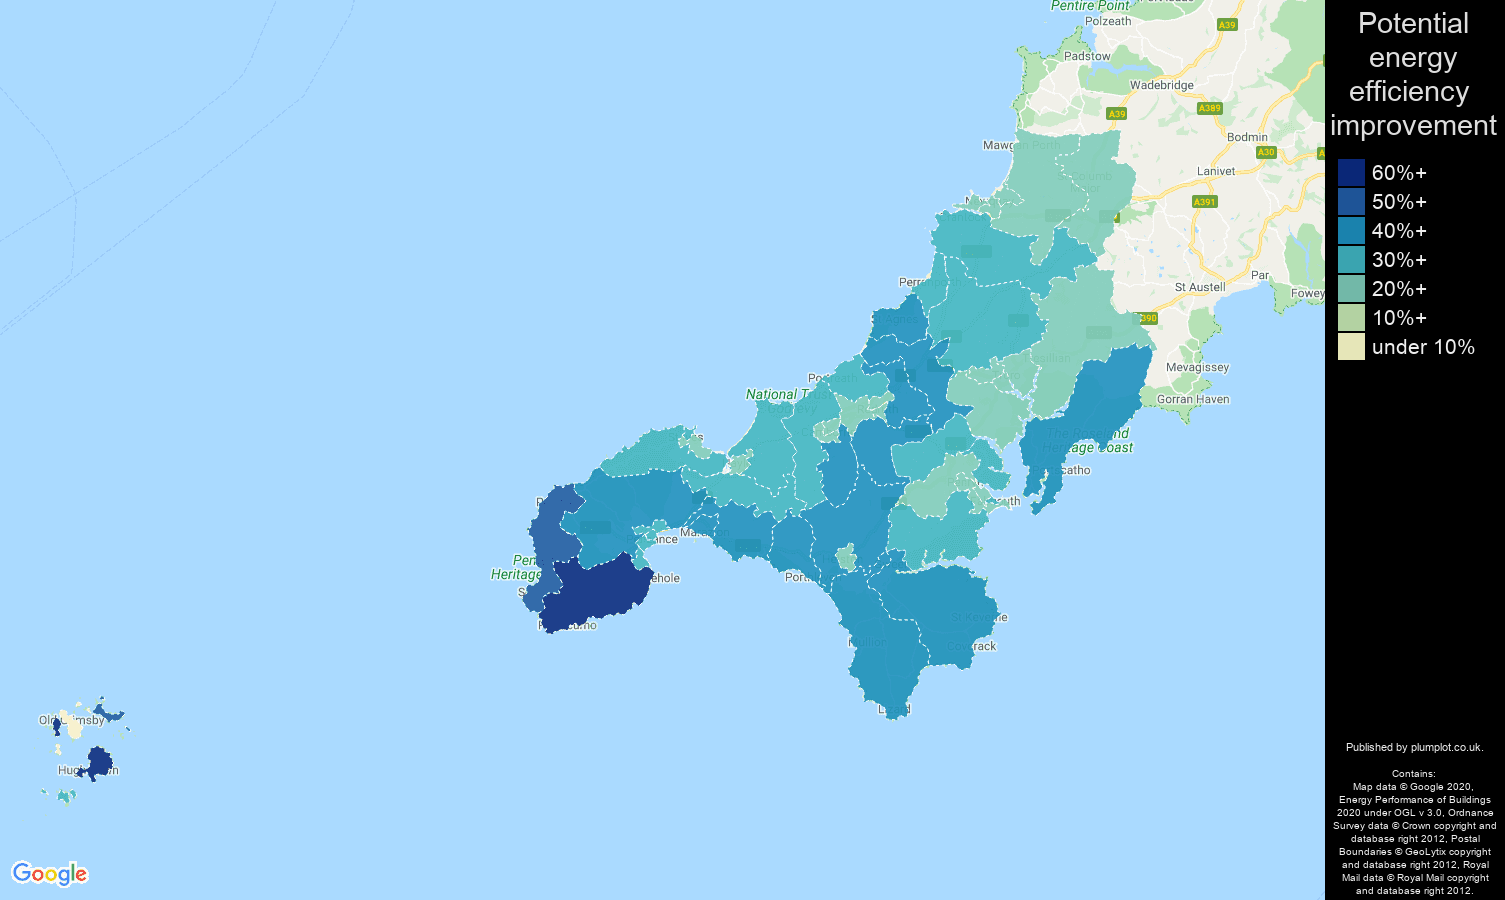 Truro map of potential energy efficiency improvement of houses